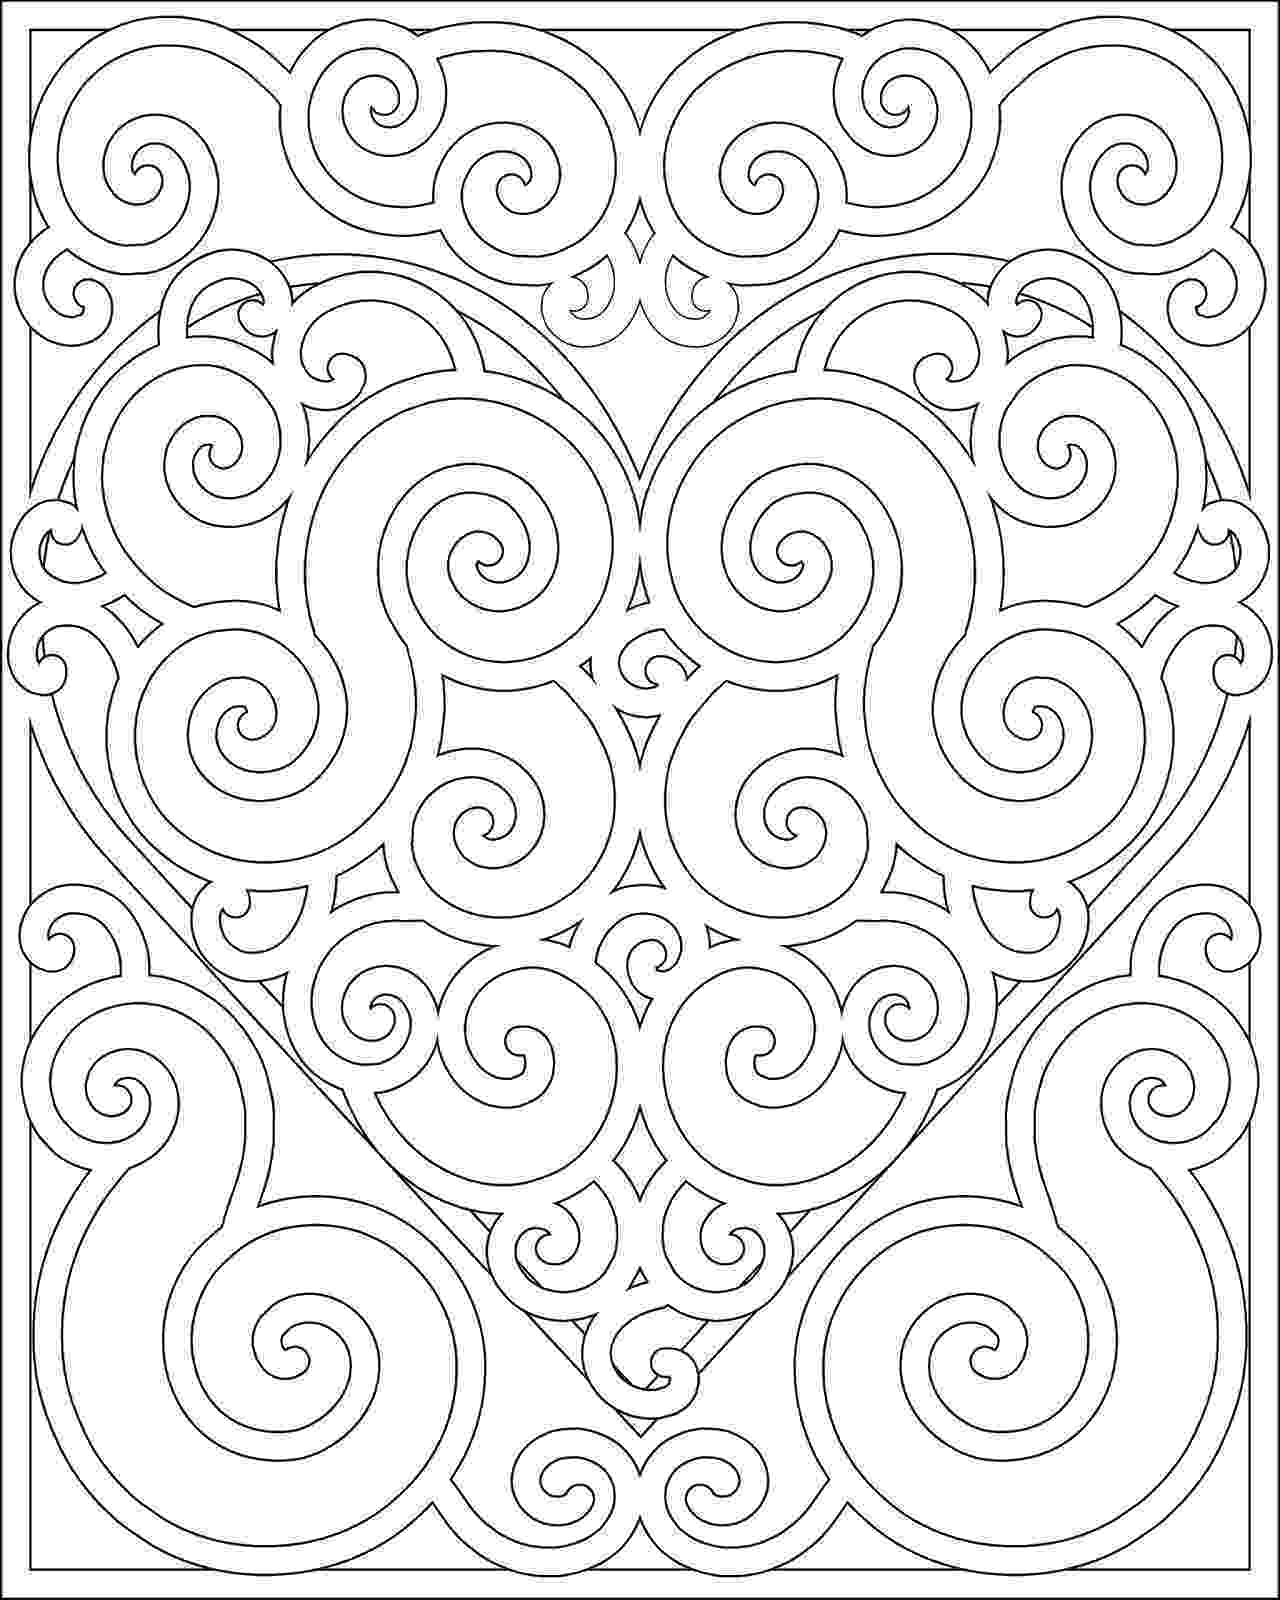 colouring sheets patterns pattern animal coloring pages download and print for free colouring sheets patterns 1 2